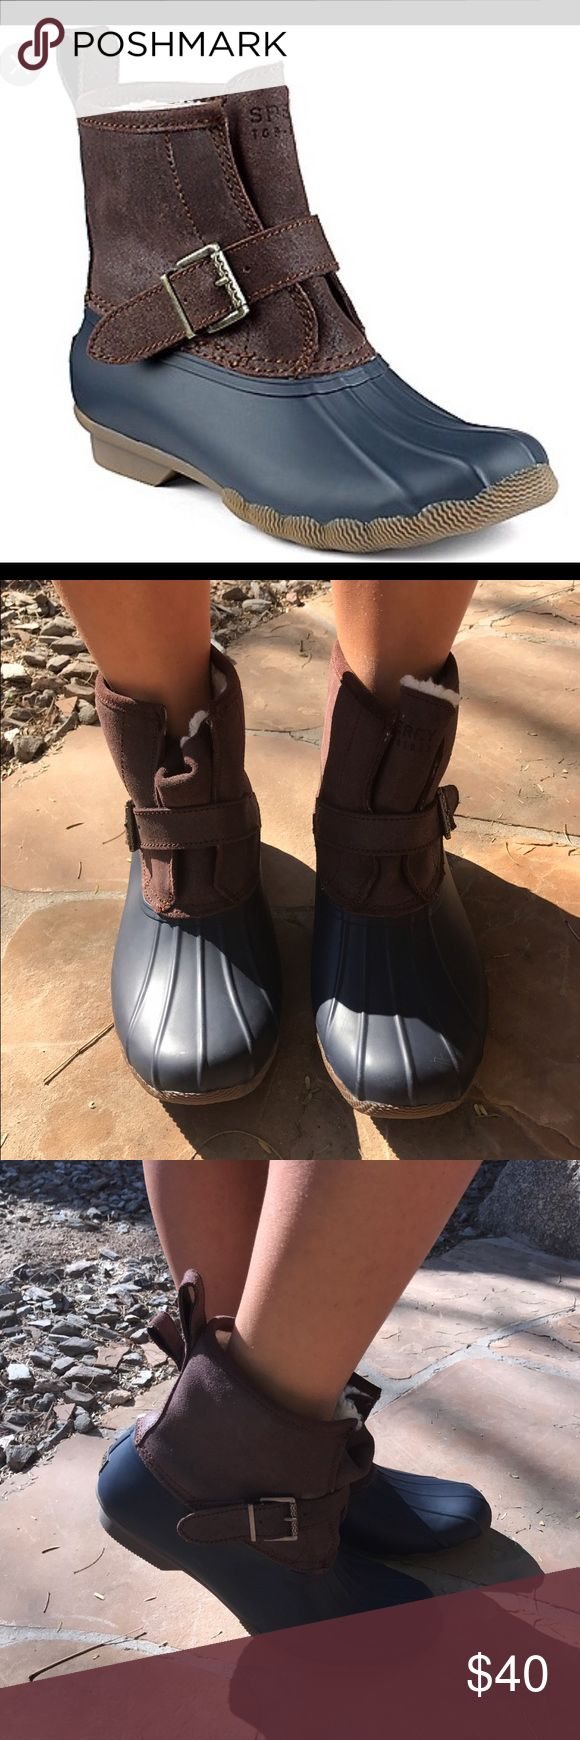 Sperry Top-Sider Boots 12 Pull on these waterproof winter boots to complete your cold weather look! With soft faux fur lining and a trendy duck boot design, the rip water snow boots will keep you cute and cozy all winter long. Worn maybe once Shoes